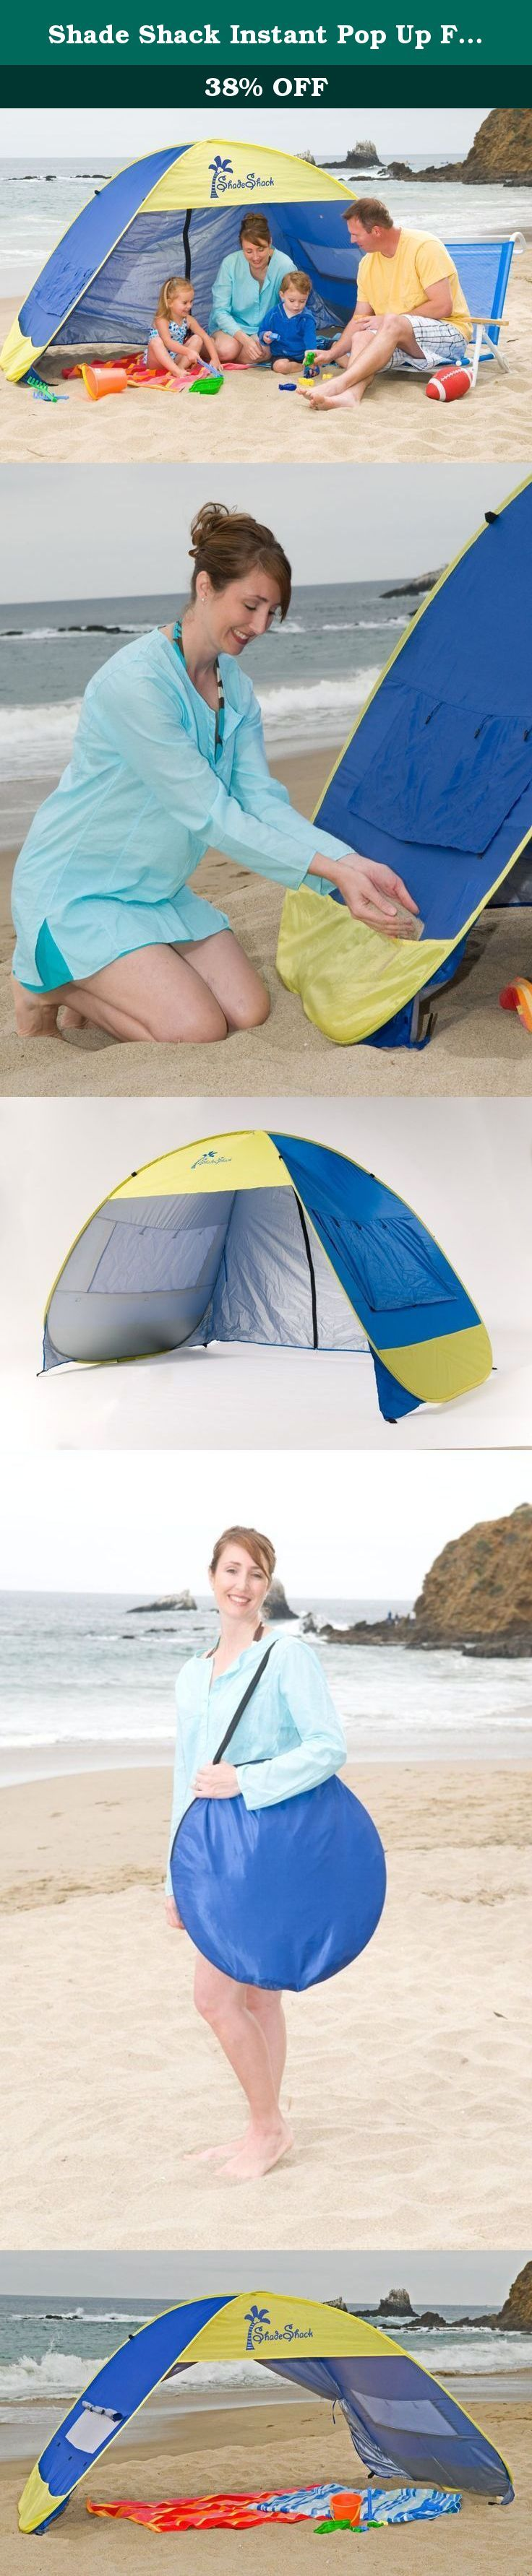 Shade Shack Instant Pop Up Family Beach Tent and Sun Shelter, Blue/Yellow. The Shade Shack pop up tent is the ultimate in sun protection. The unique pop up design can be set up and stowed in a matter of seconds. Now you can have your own private cabana wherever you enjoy outdoor fun. Perfect for the beach, backyard, parks or picnics. The zinc coated polyester material offers a ultra violet protection factor of 30+ which means it blocks out over 96% of harmful uv rays. Filling the pockets…